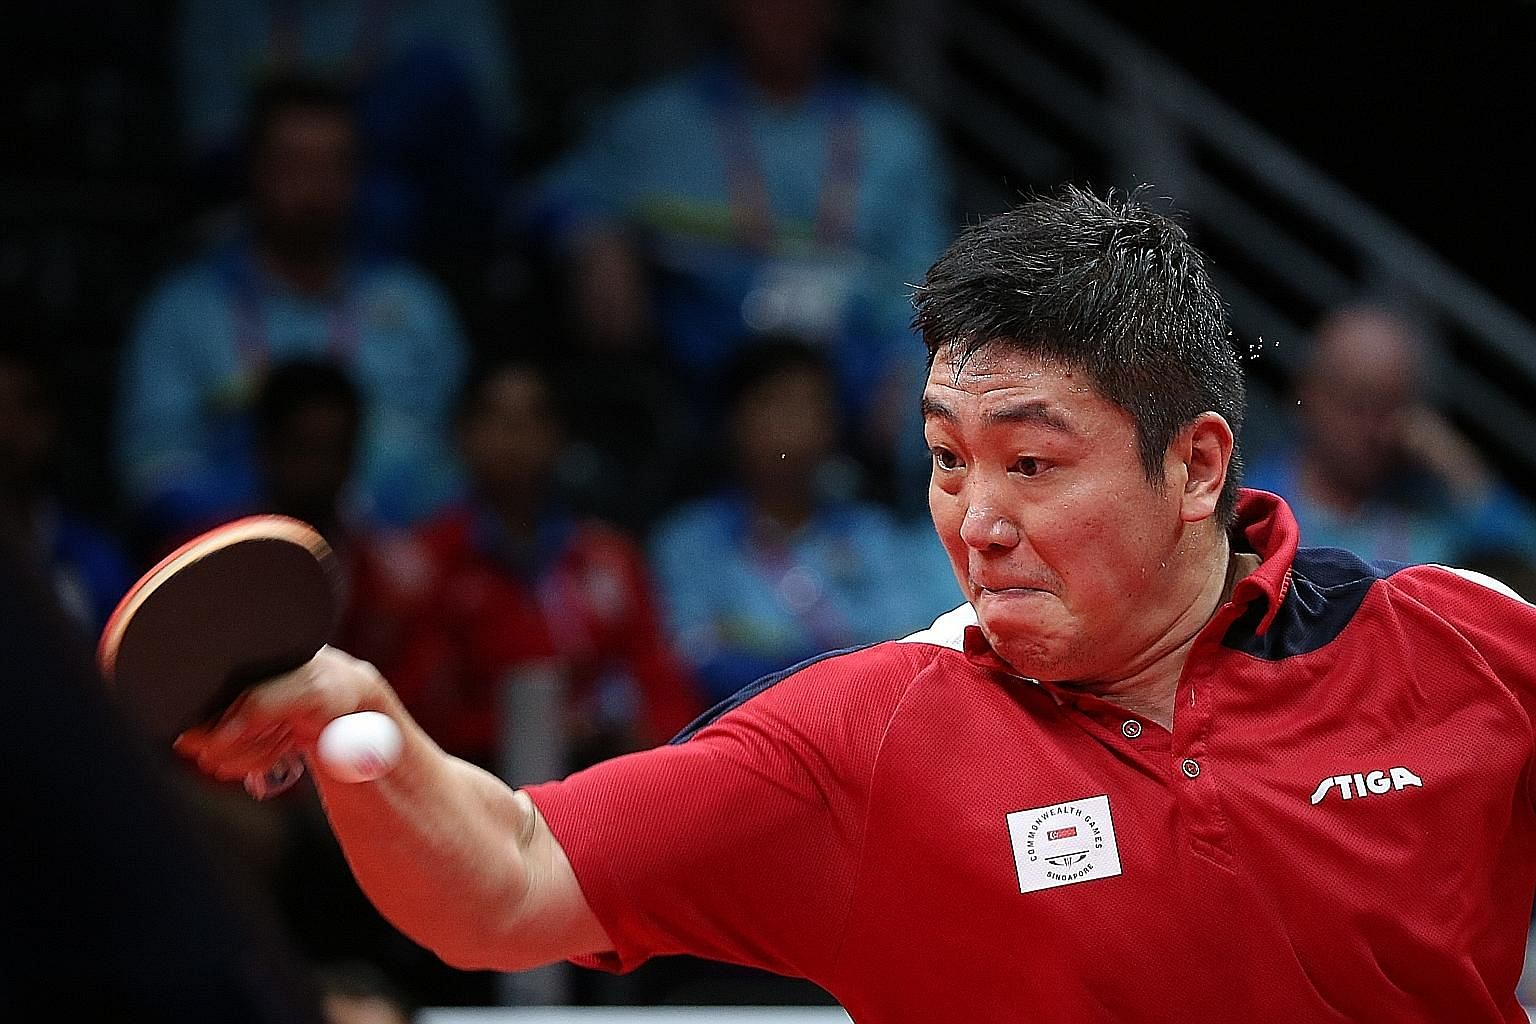 Gao Ning of Singapore in action against Nigeria's Quadri Aruna (not pictured) yesterday at the Commonwealth Games. He finally won his first men's singles gold medal after beating his opponent 4-2. Singapore's table tennis team ended the Games with th